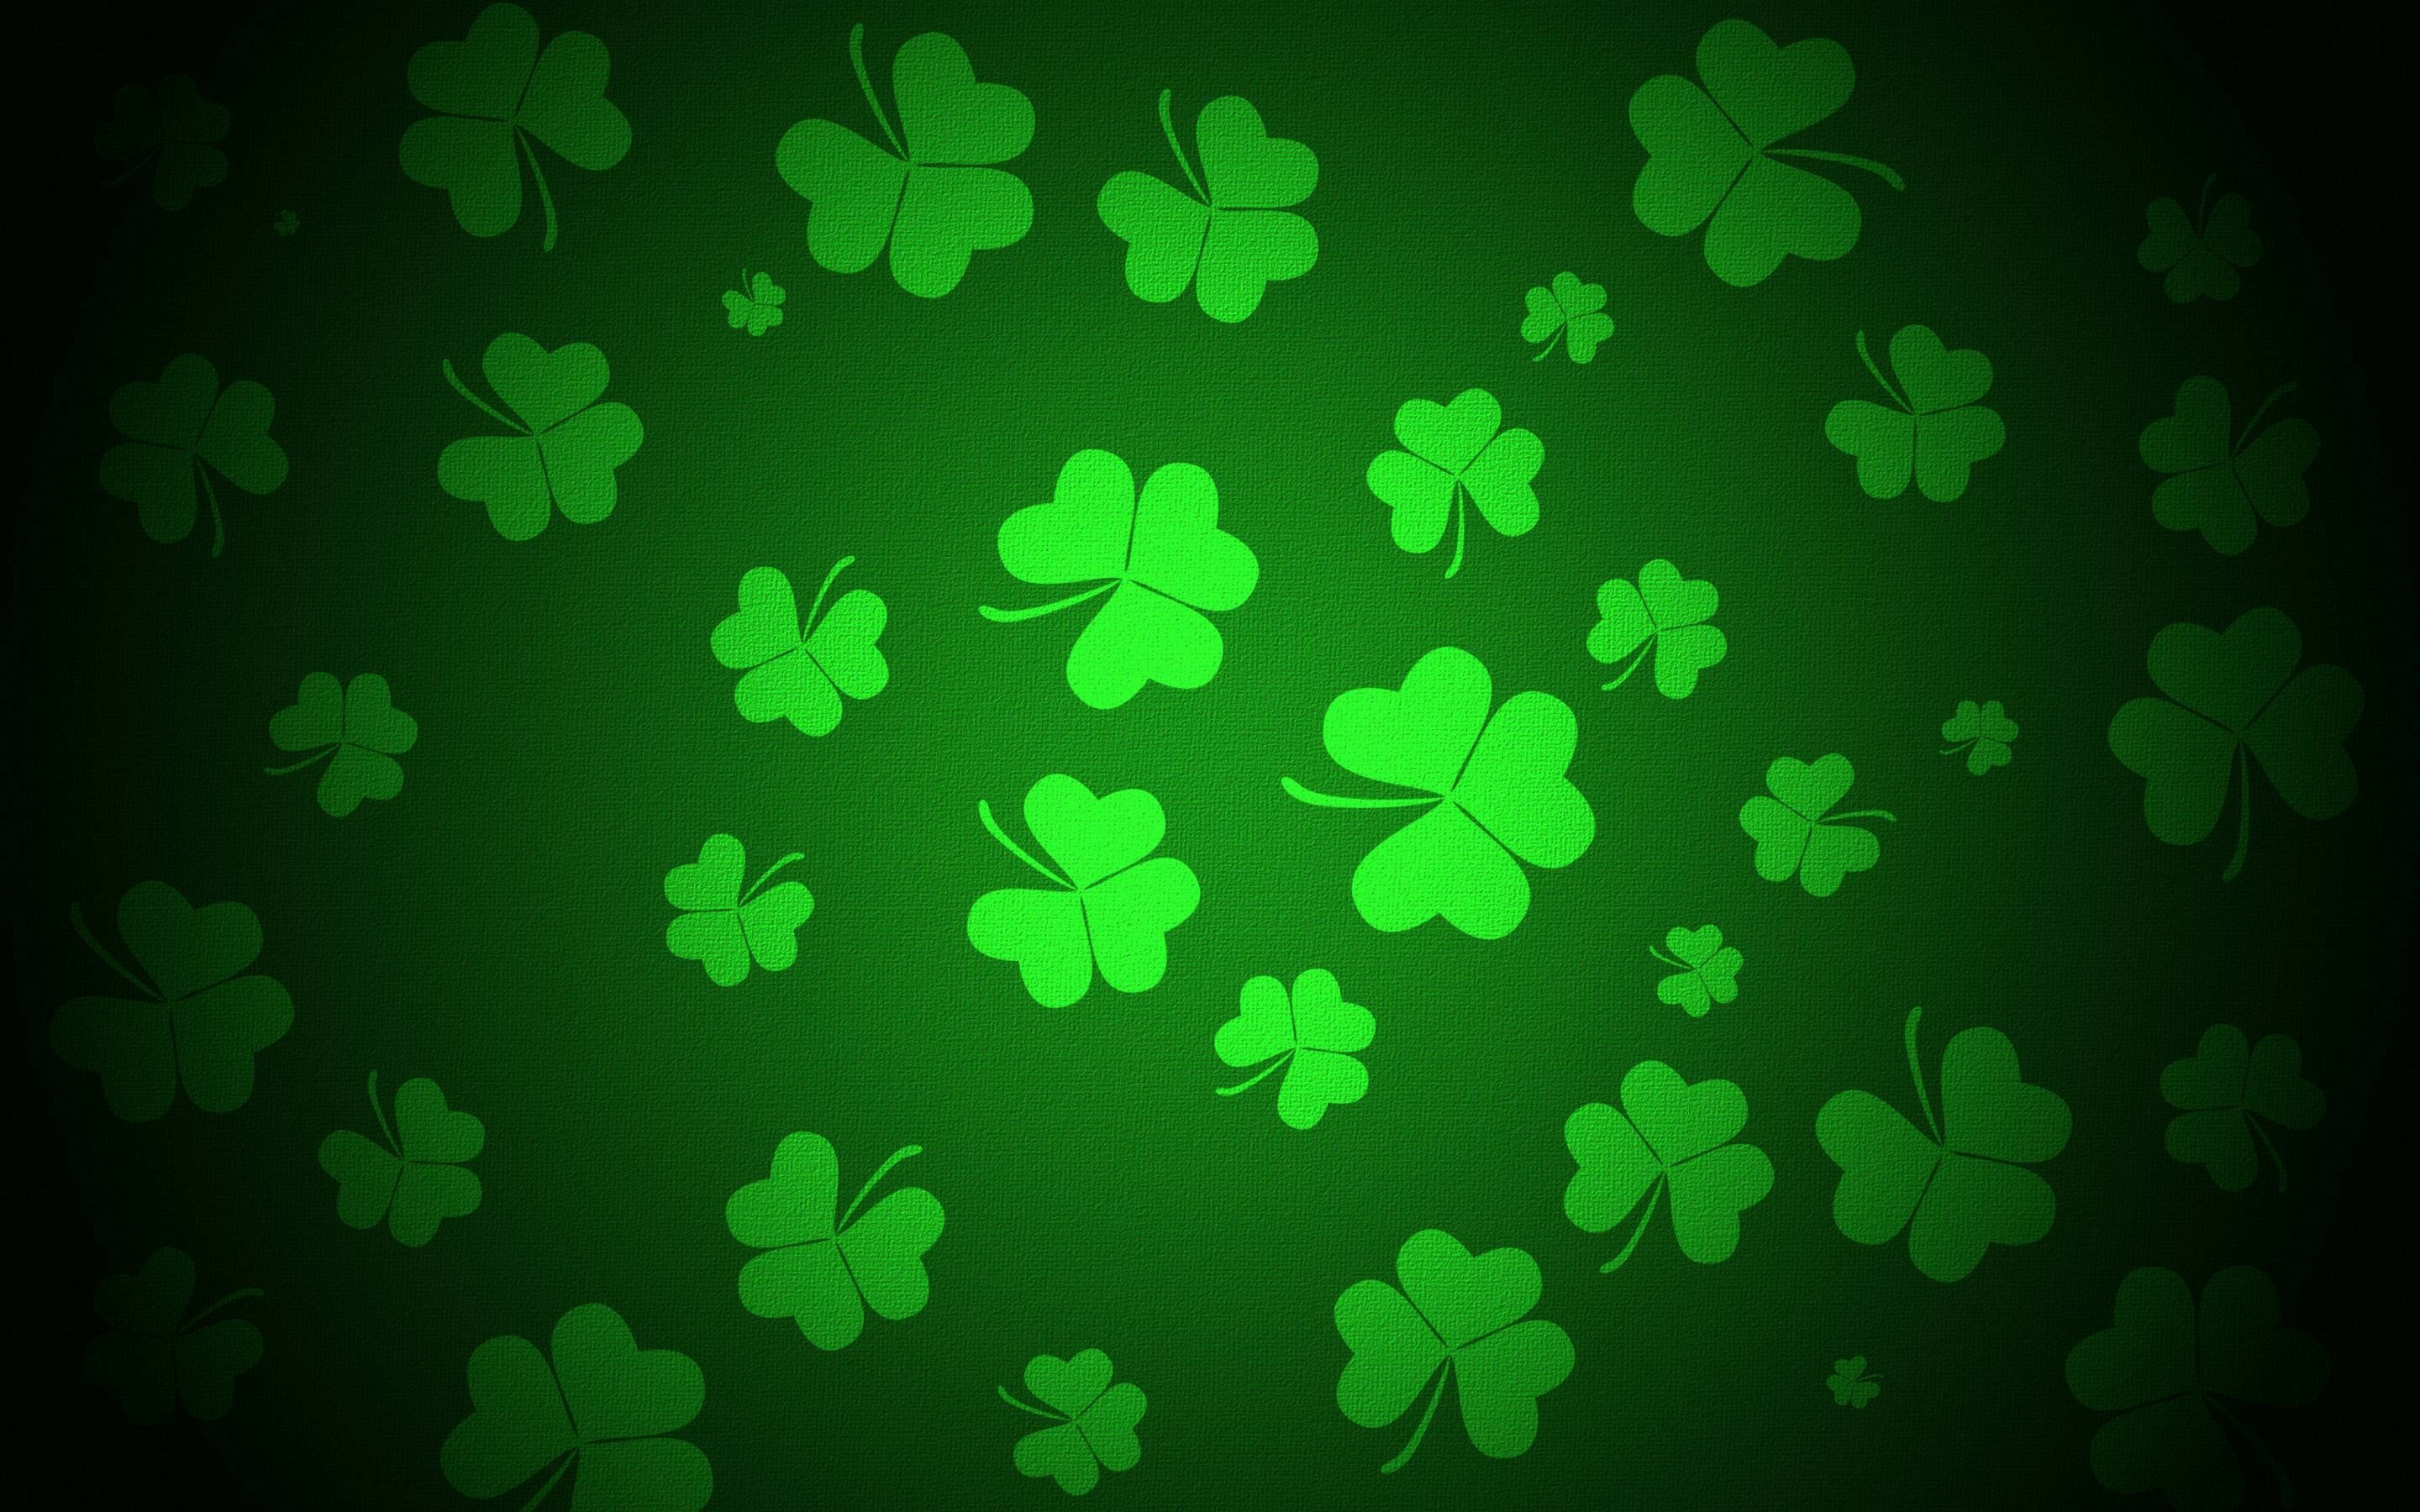 free download four leaf clover wallpapers hd - wallpaper.wiki